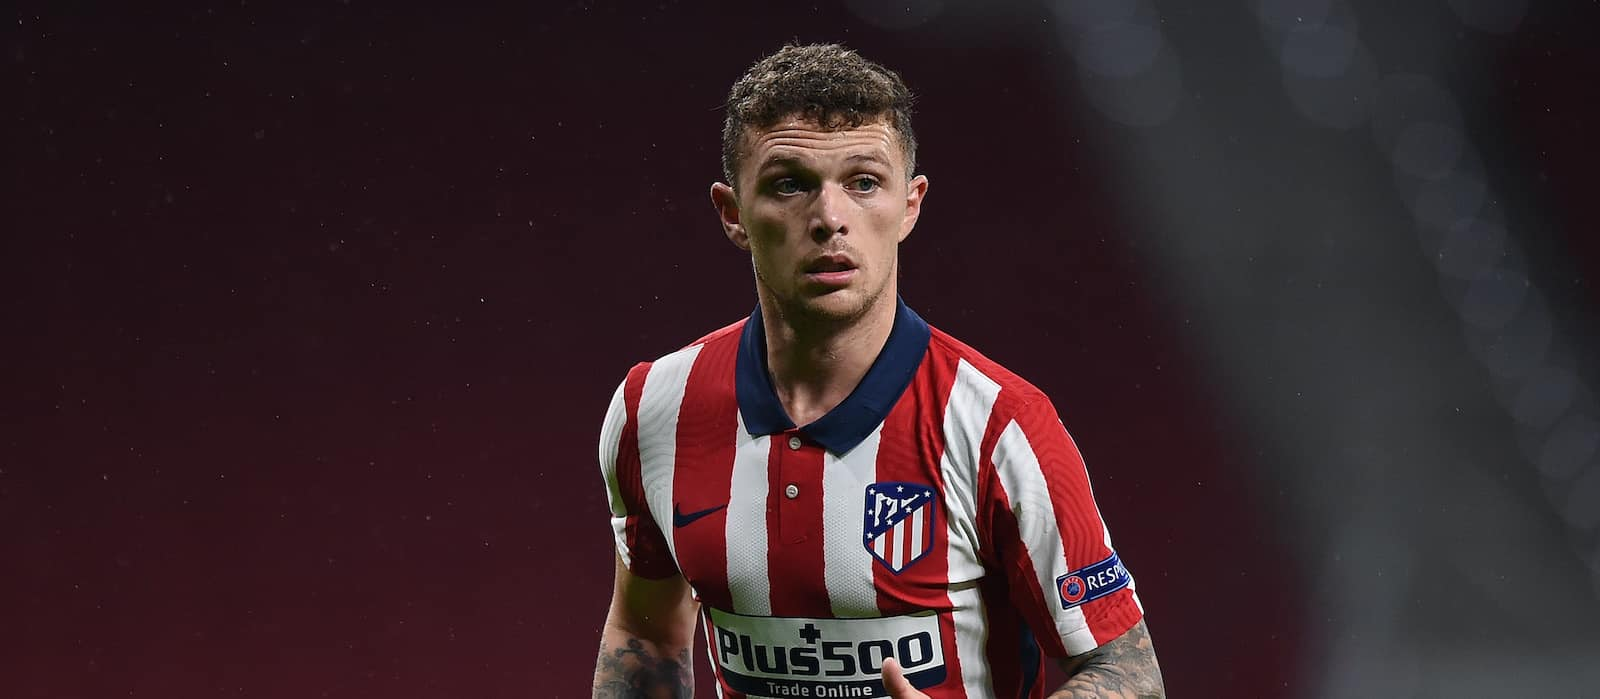 Kieran Trippier to Manchester United: the response from Spain